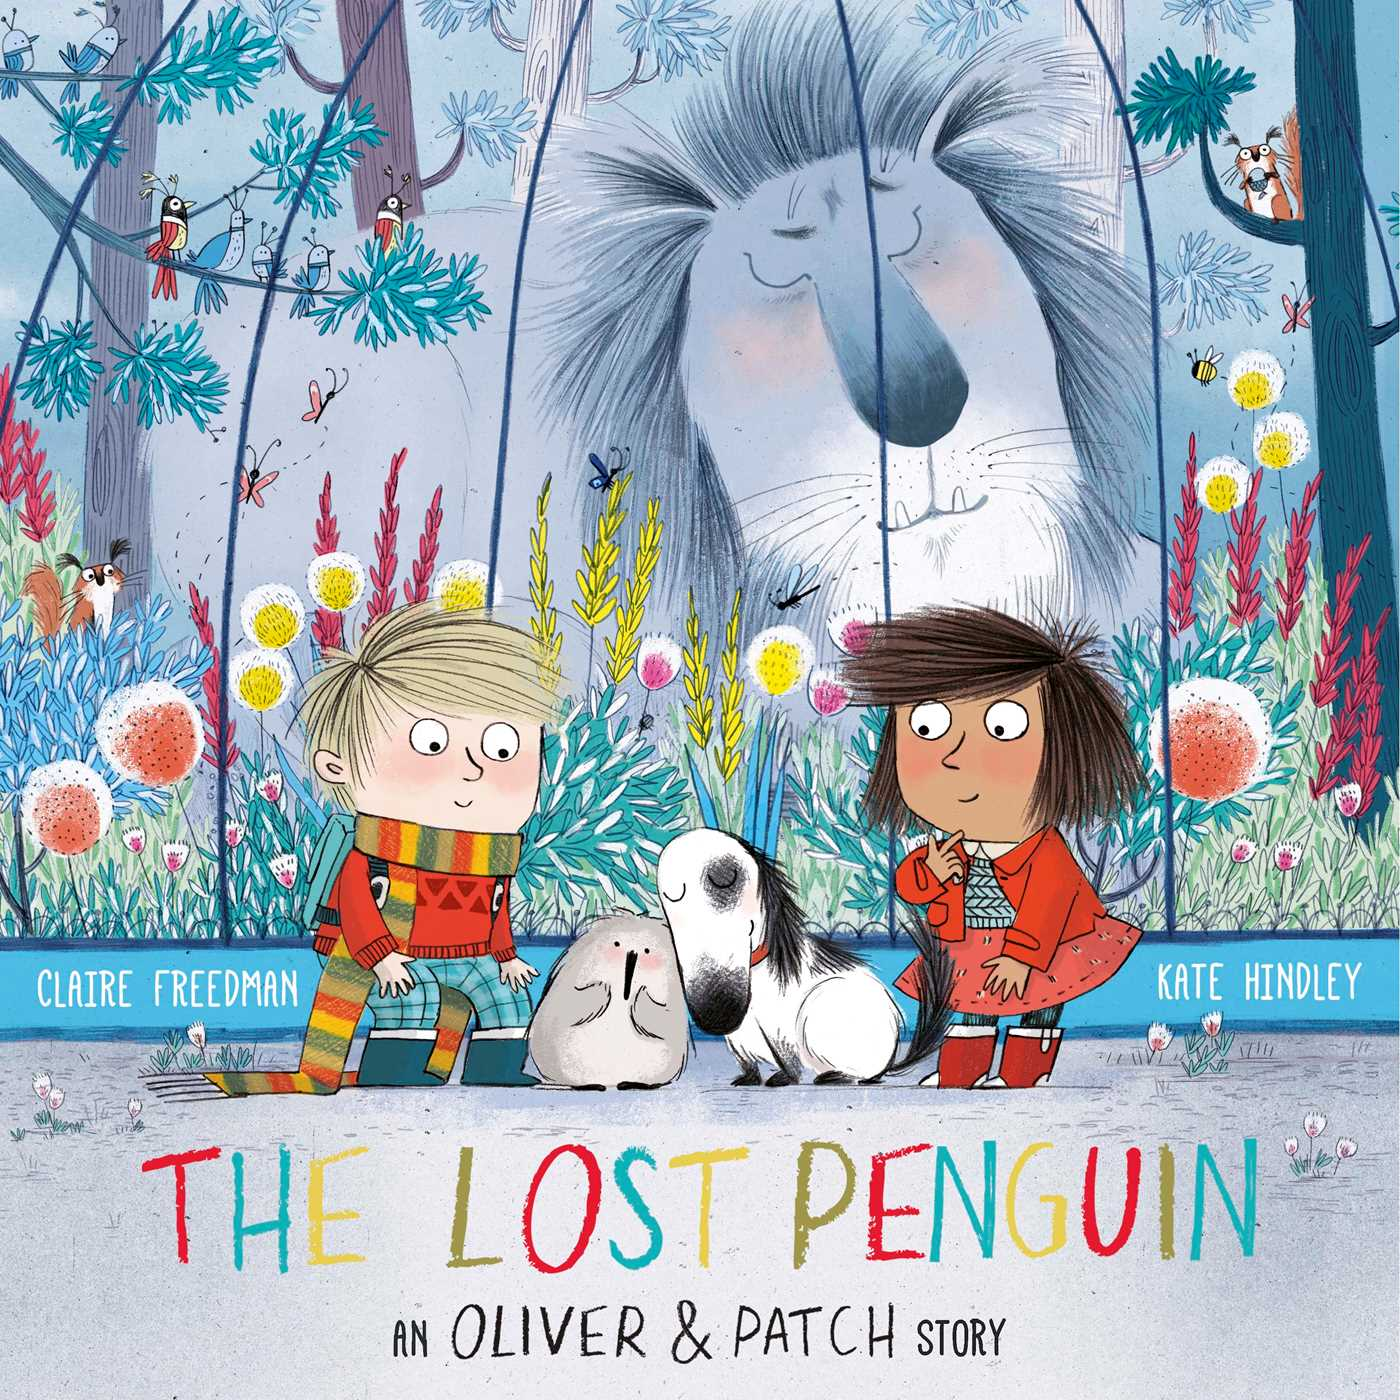 The lost penguin 9781471117343 hr